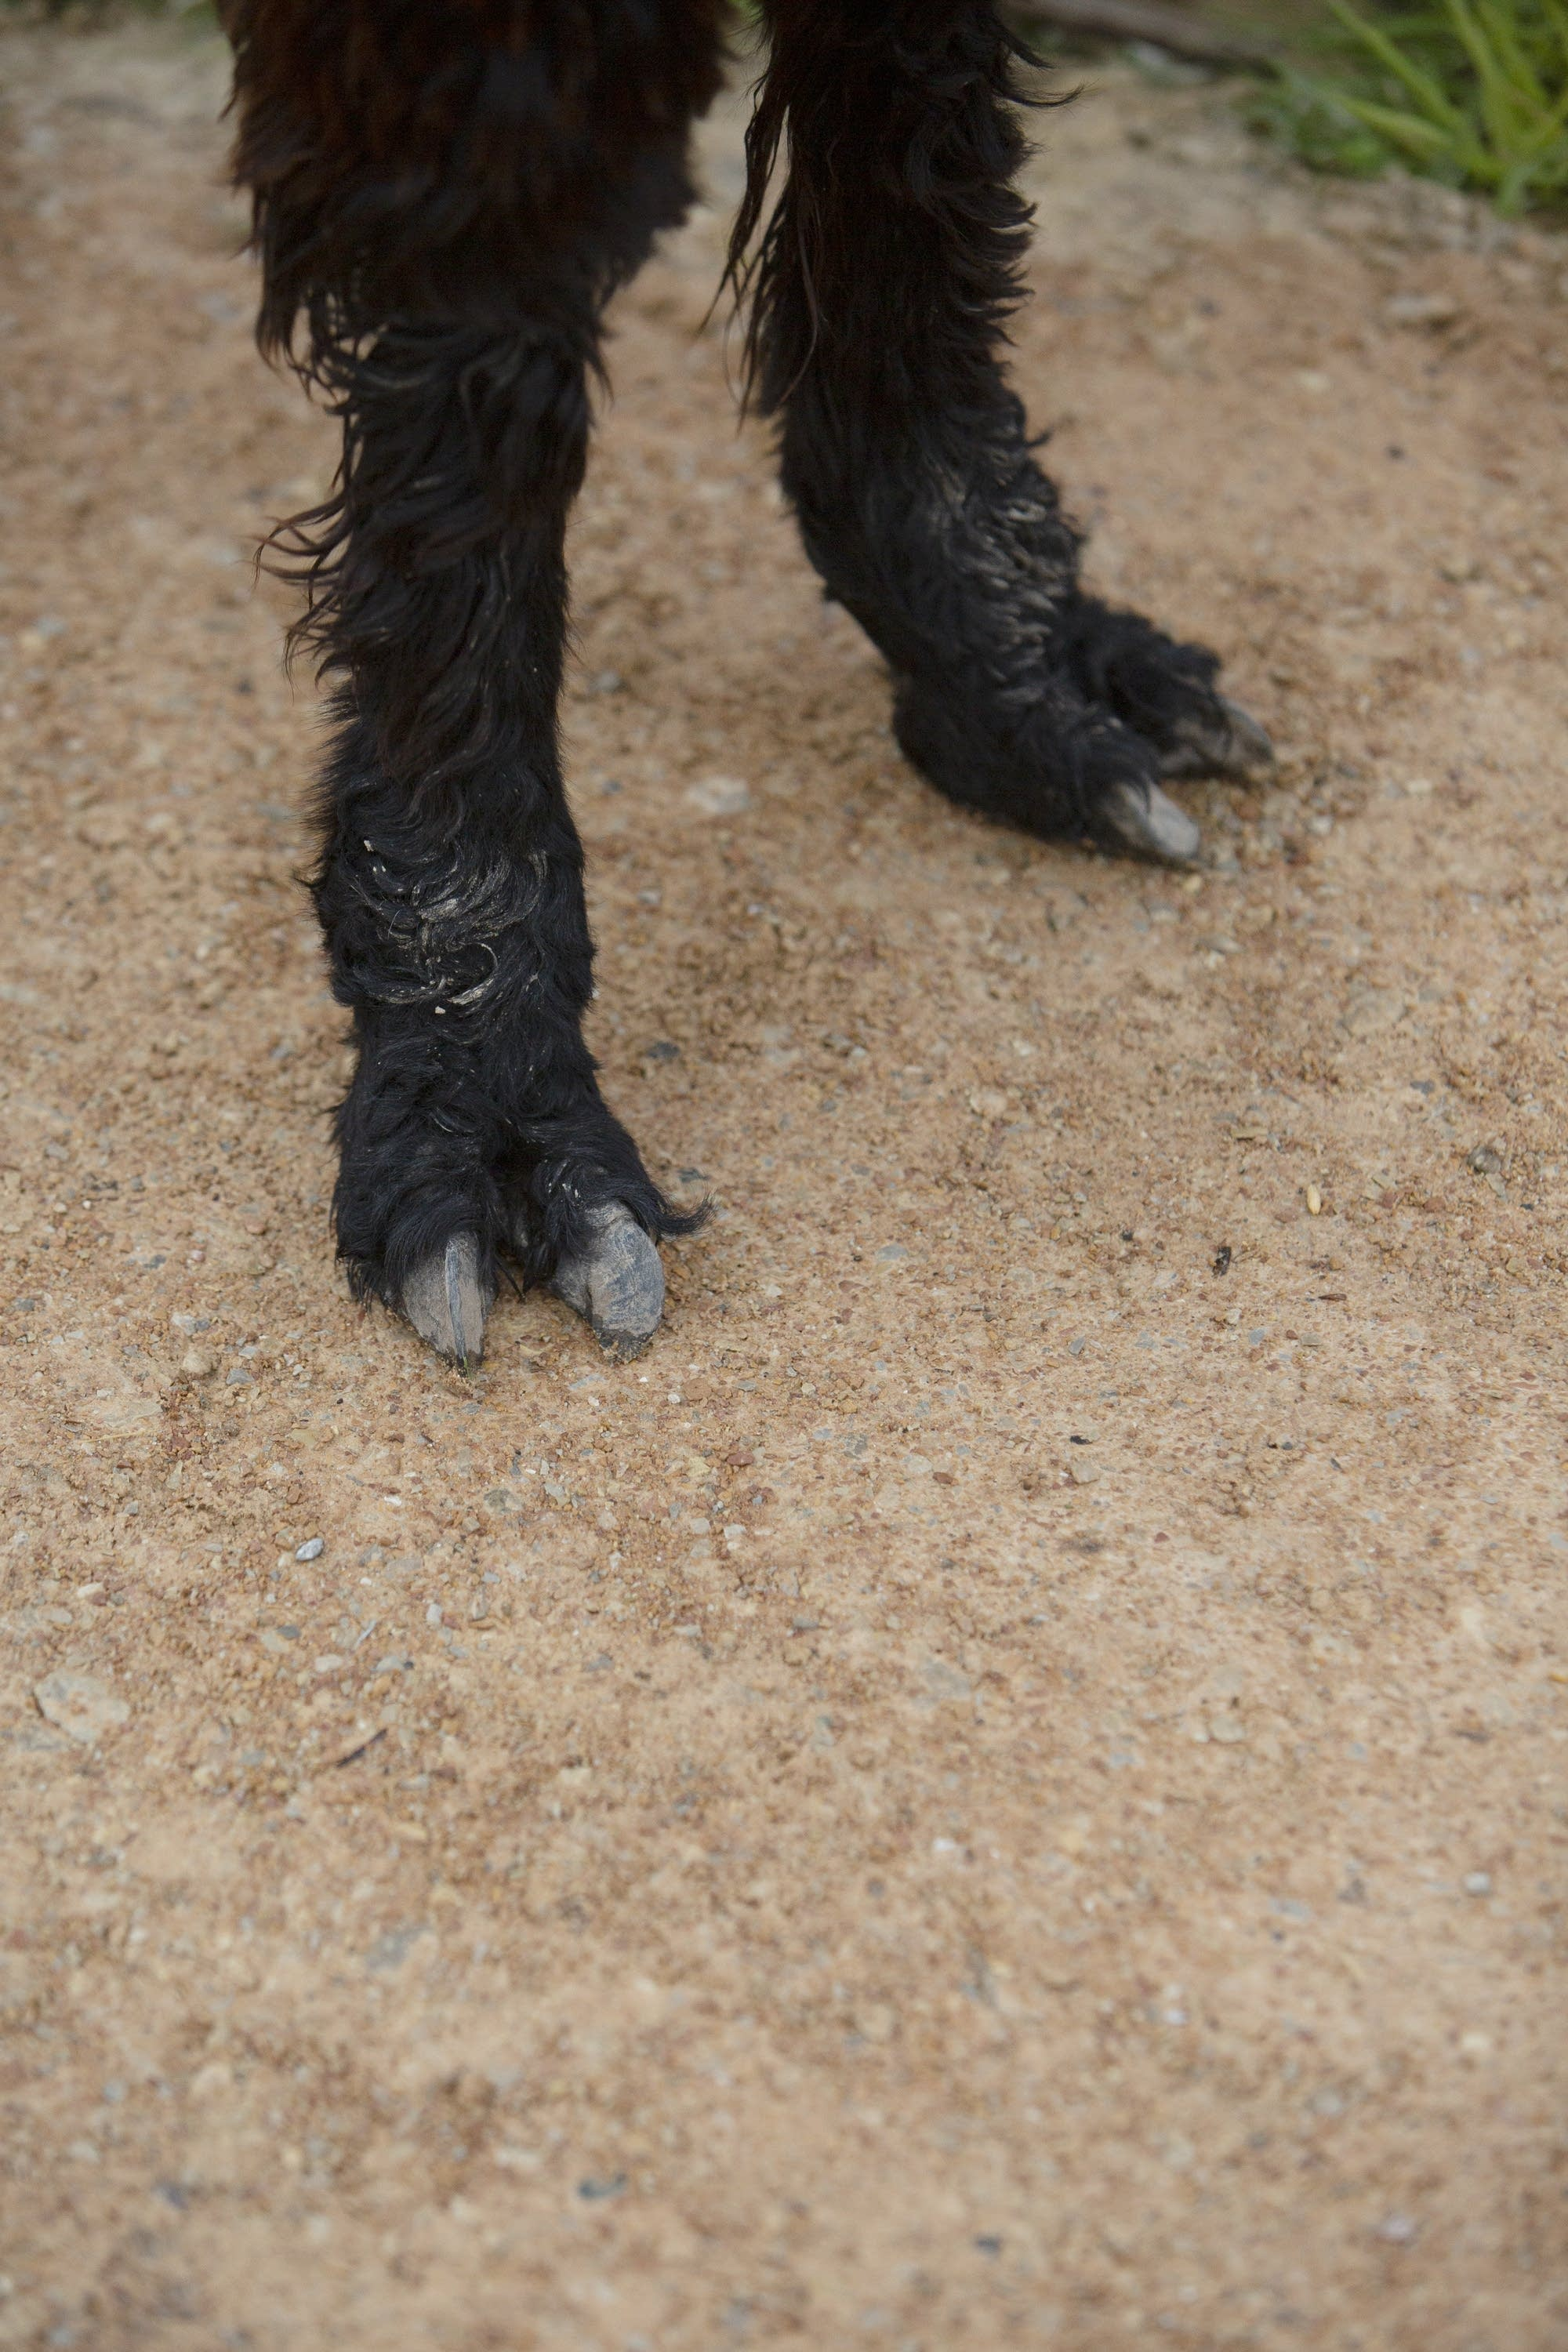 Llamas have two toes on each foot.